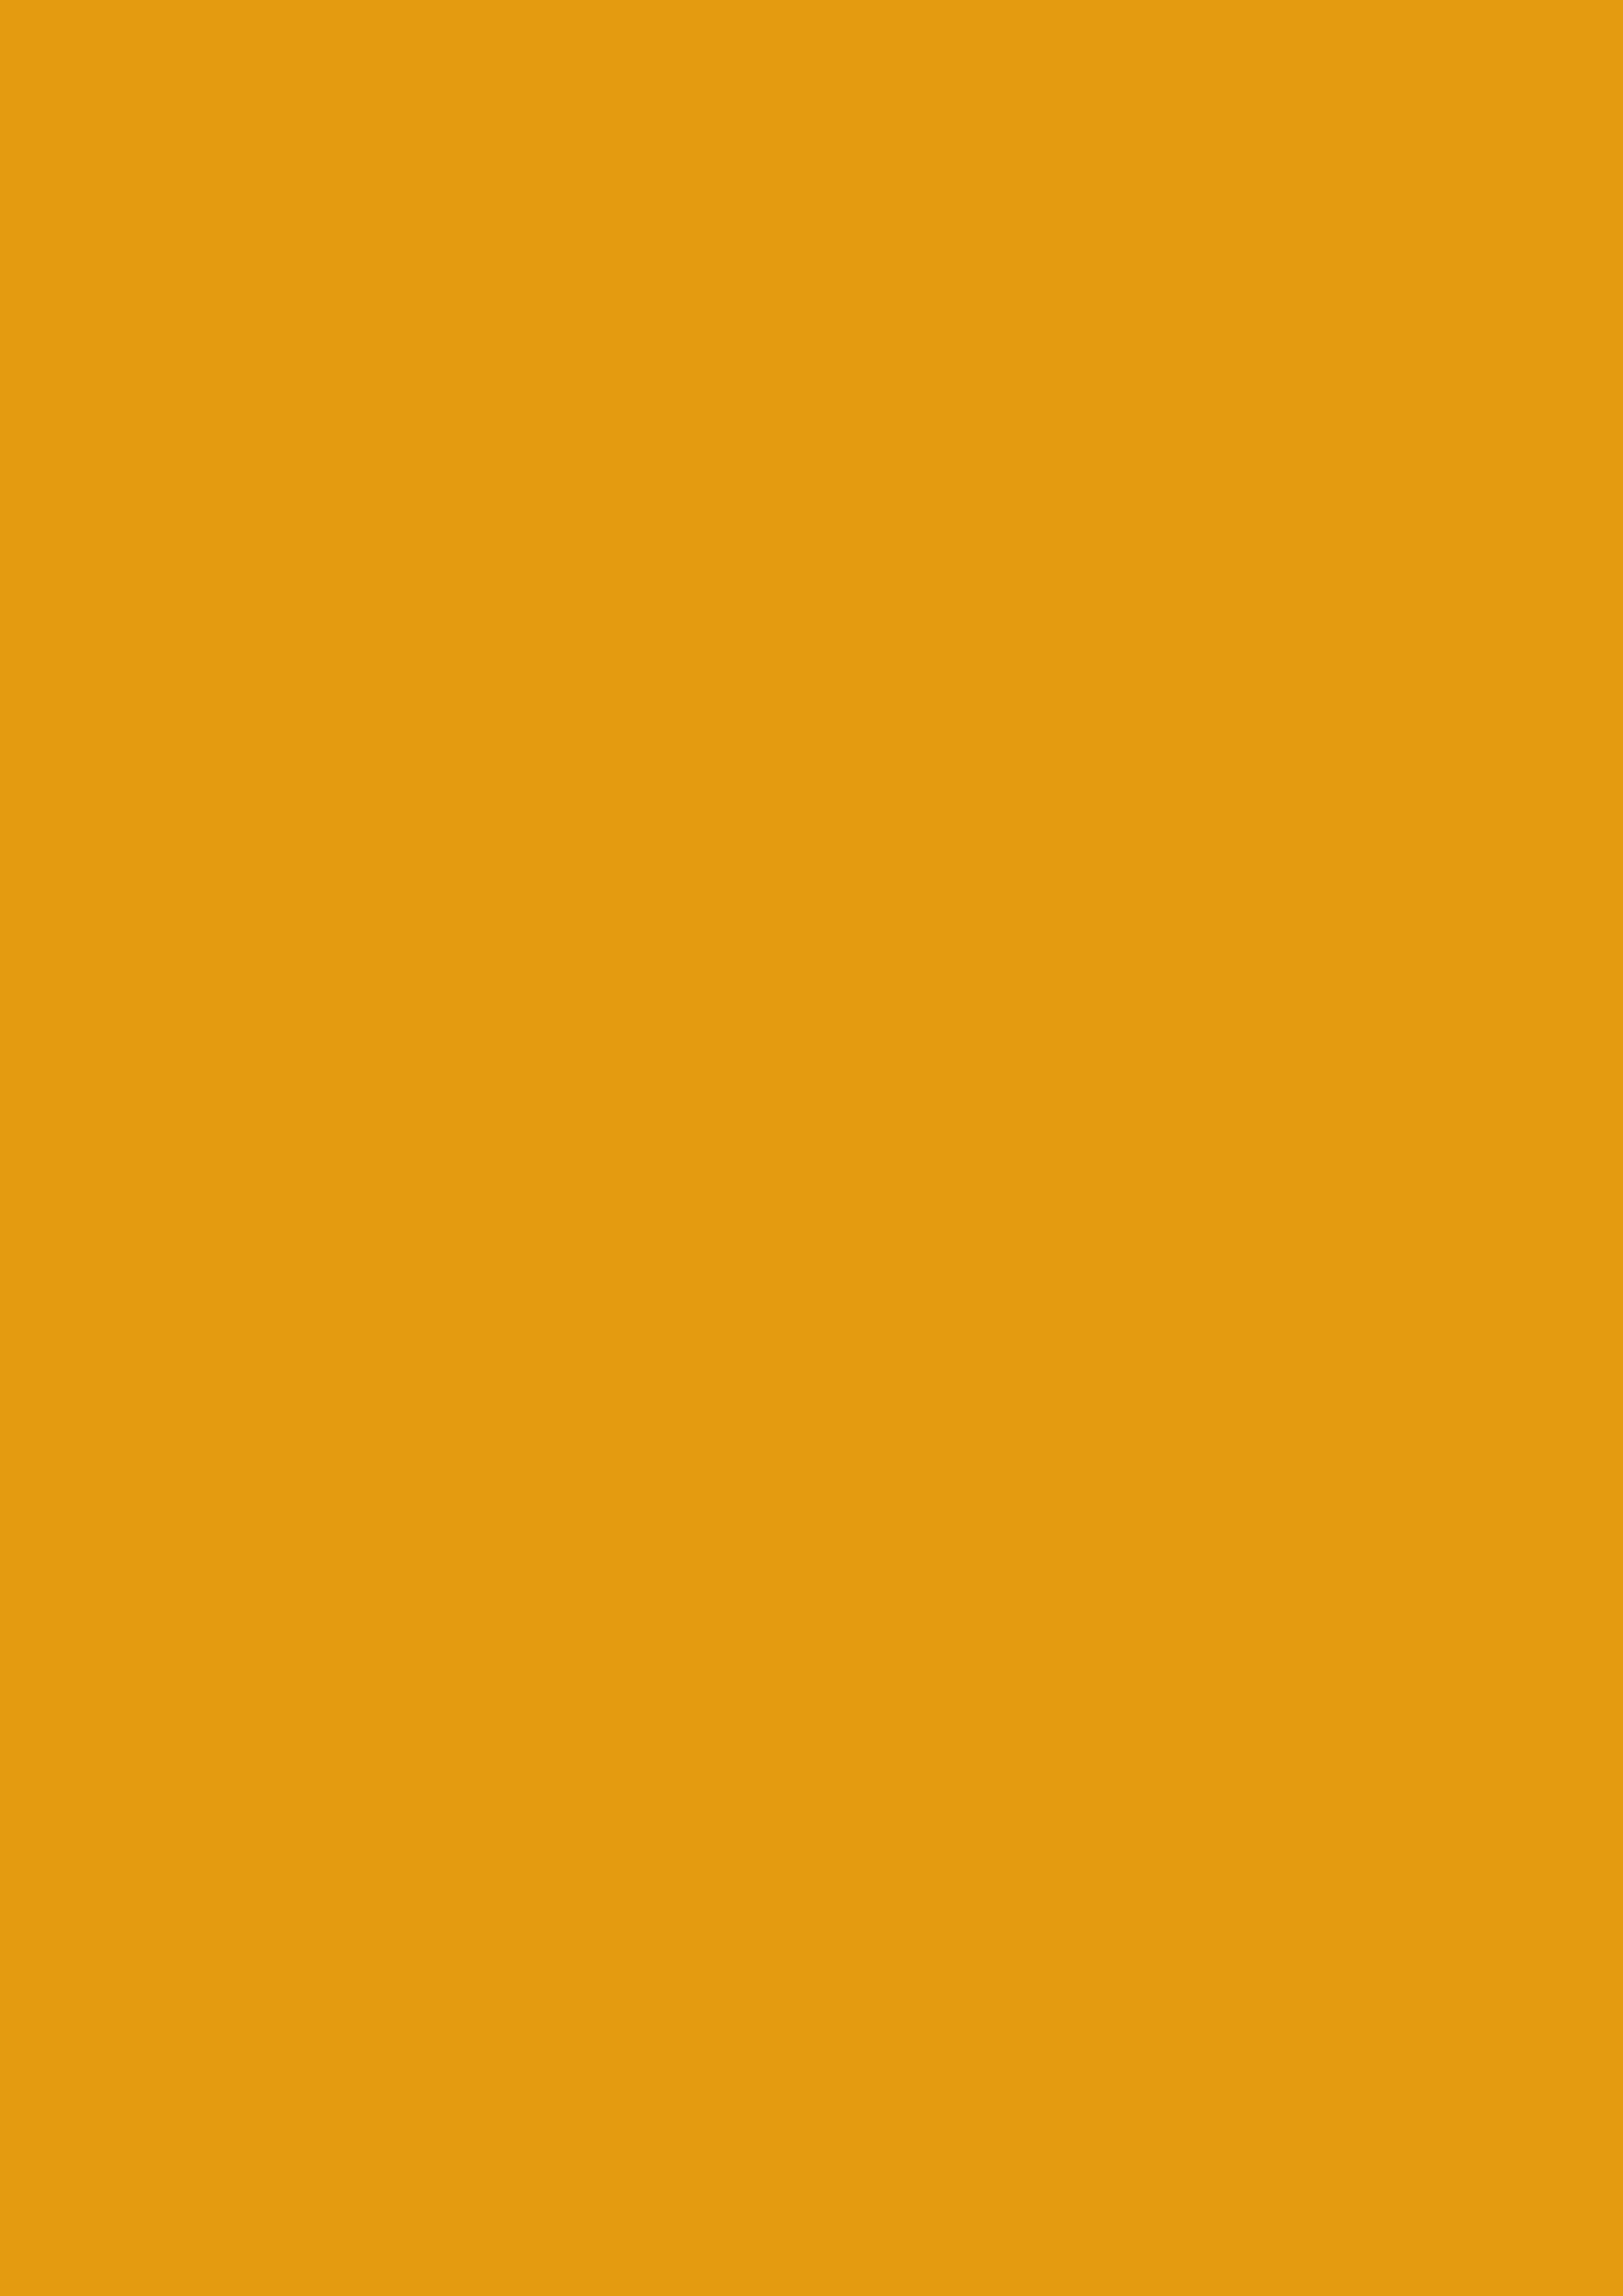 2480x3508 Gamboge Solid Color Background